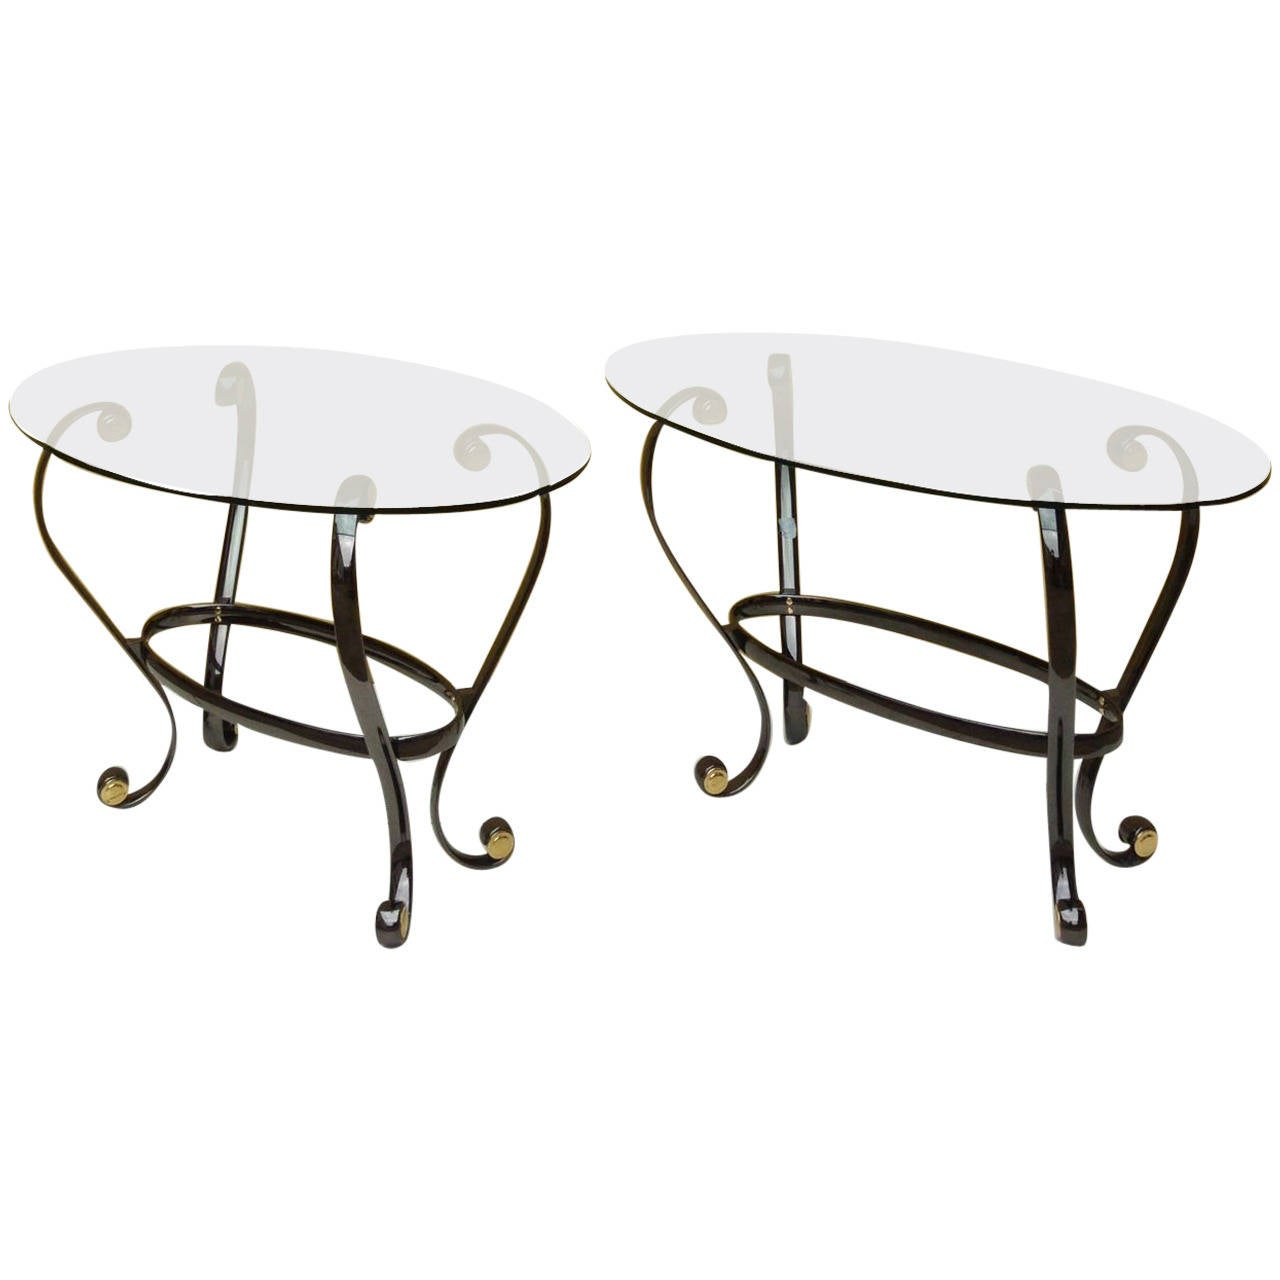 1990s pair of side tables by versace collection at 1stdibs for Table versace